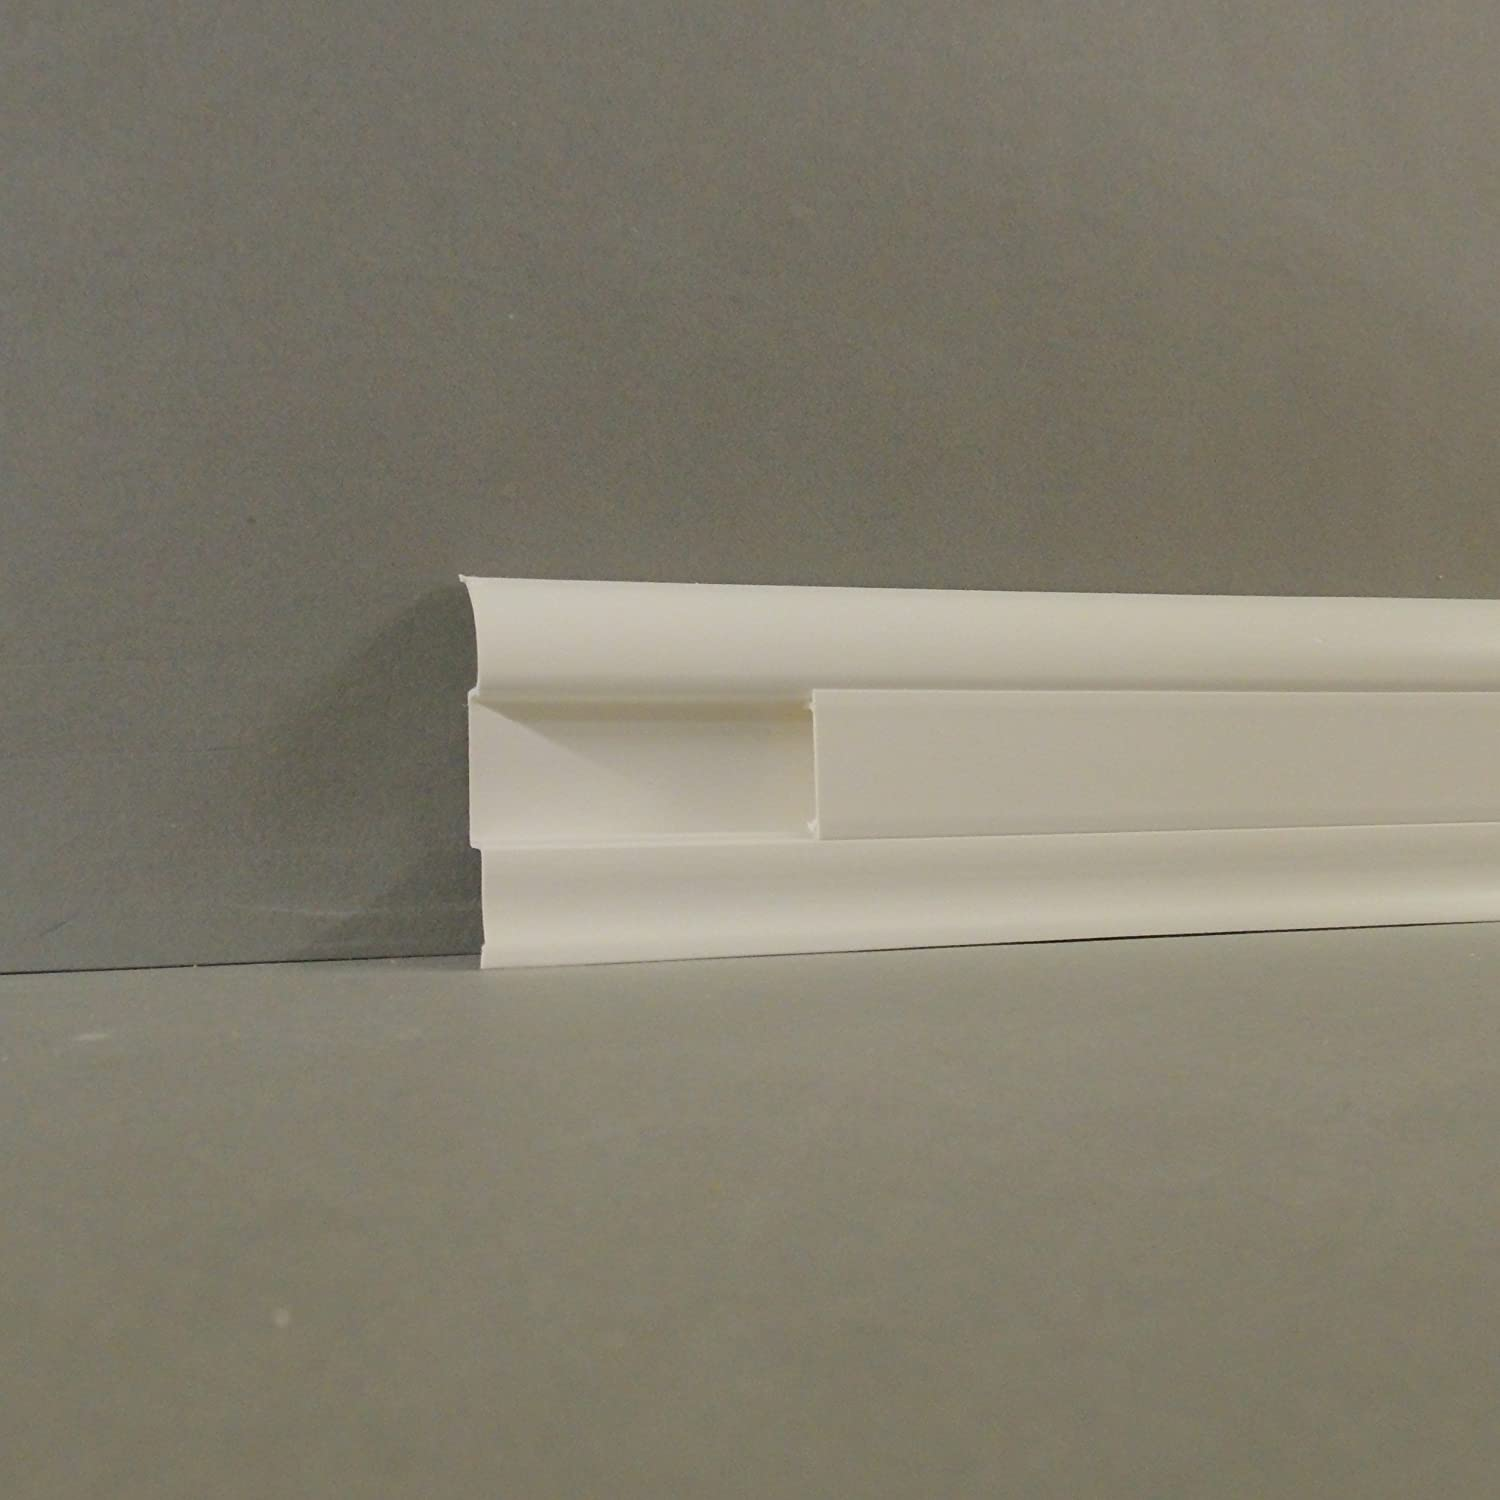 Marbet Skirting Board Arco Aus Pvc Plastic With Cable Duct In White Wiring Kitchen Home